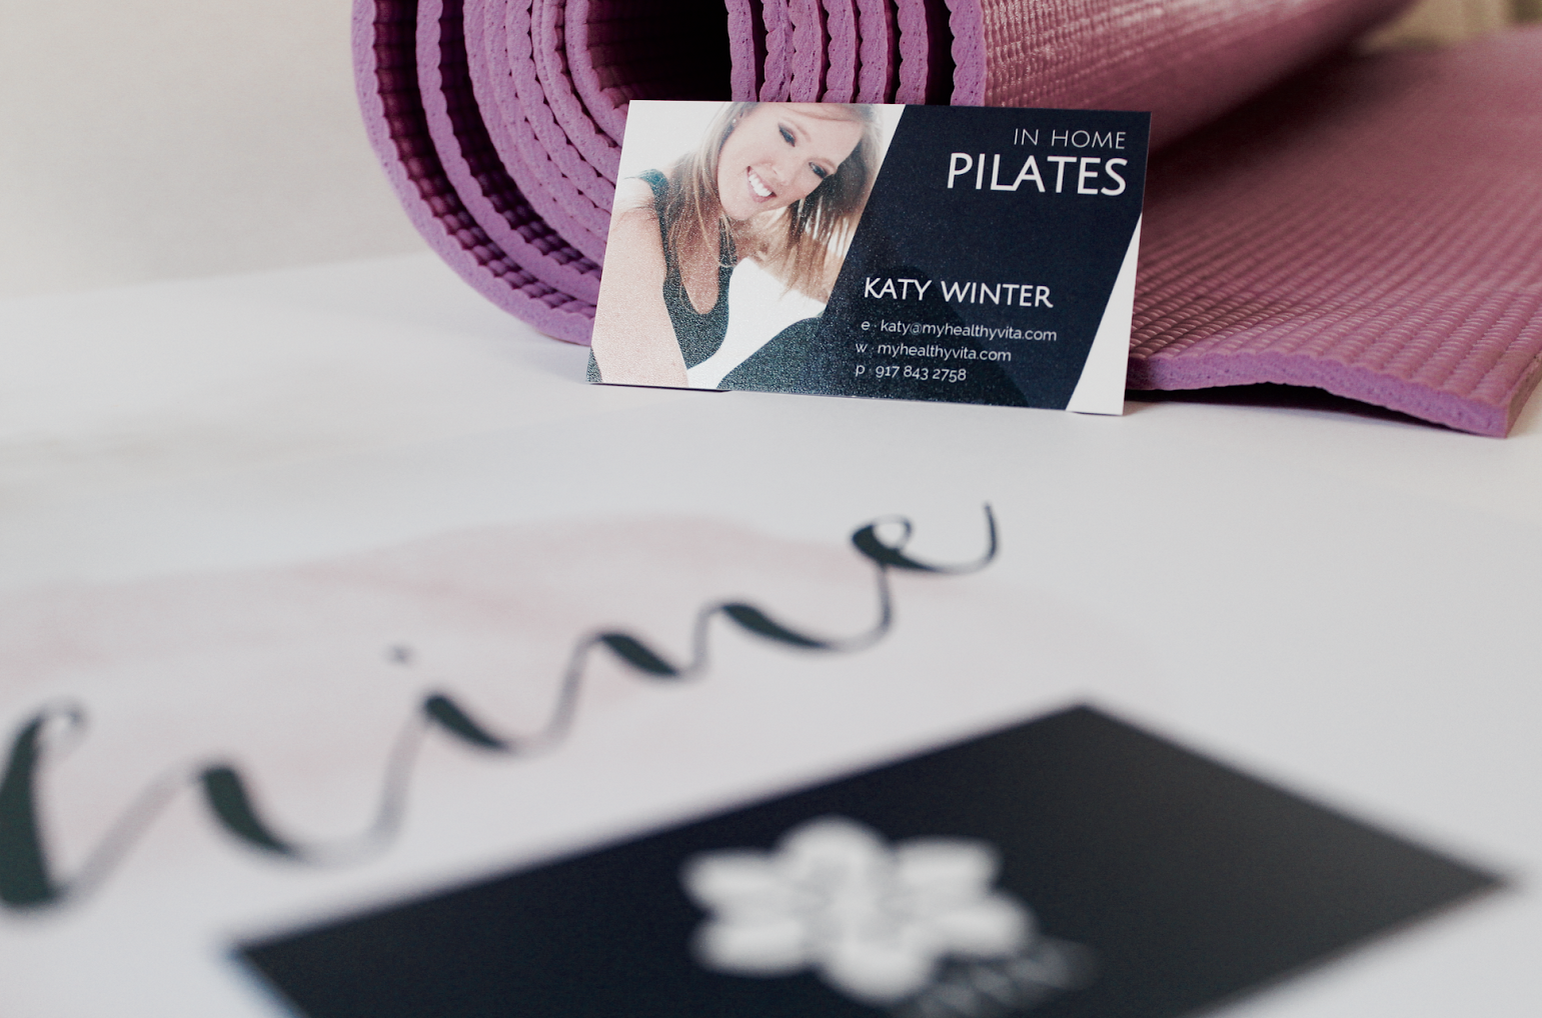 Business card and flyer design proposal in home pilates creative business card and flyer design proposal in home pilates creative studio reheart Images